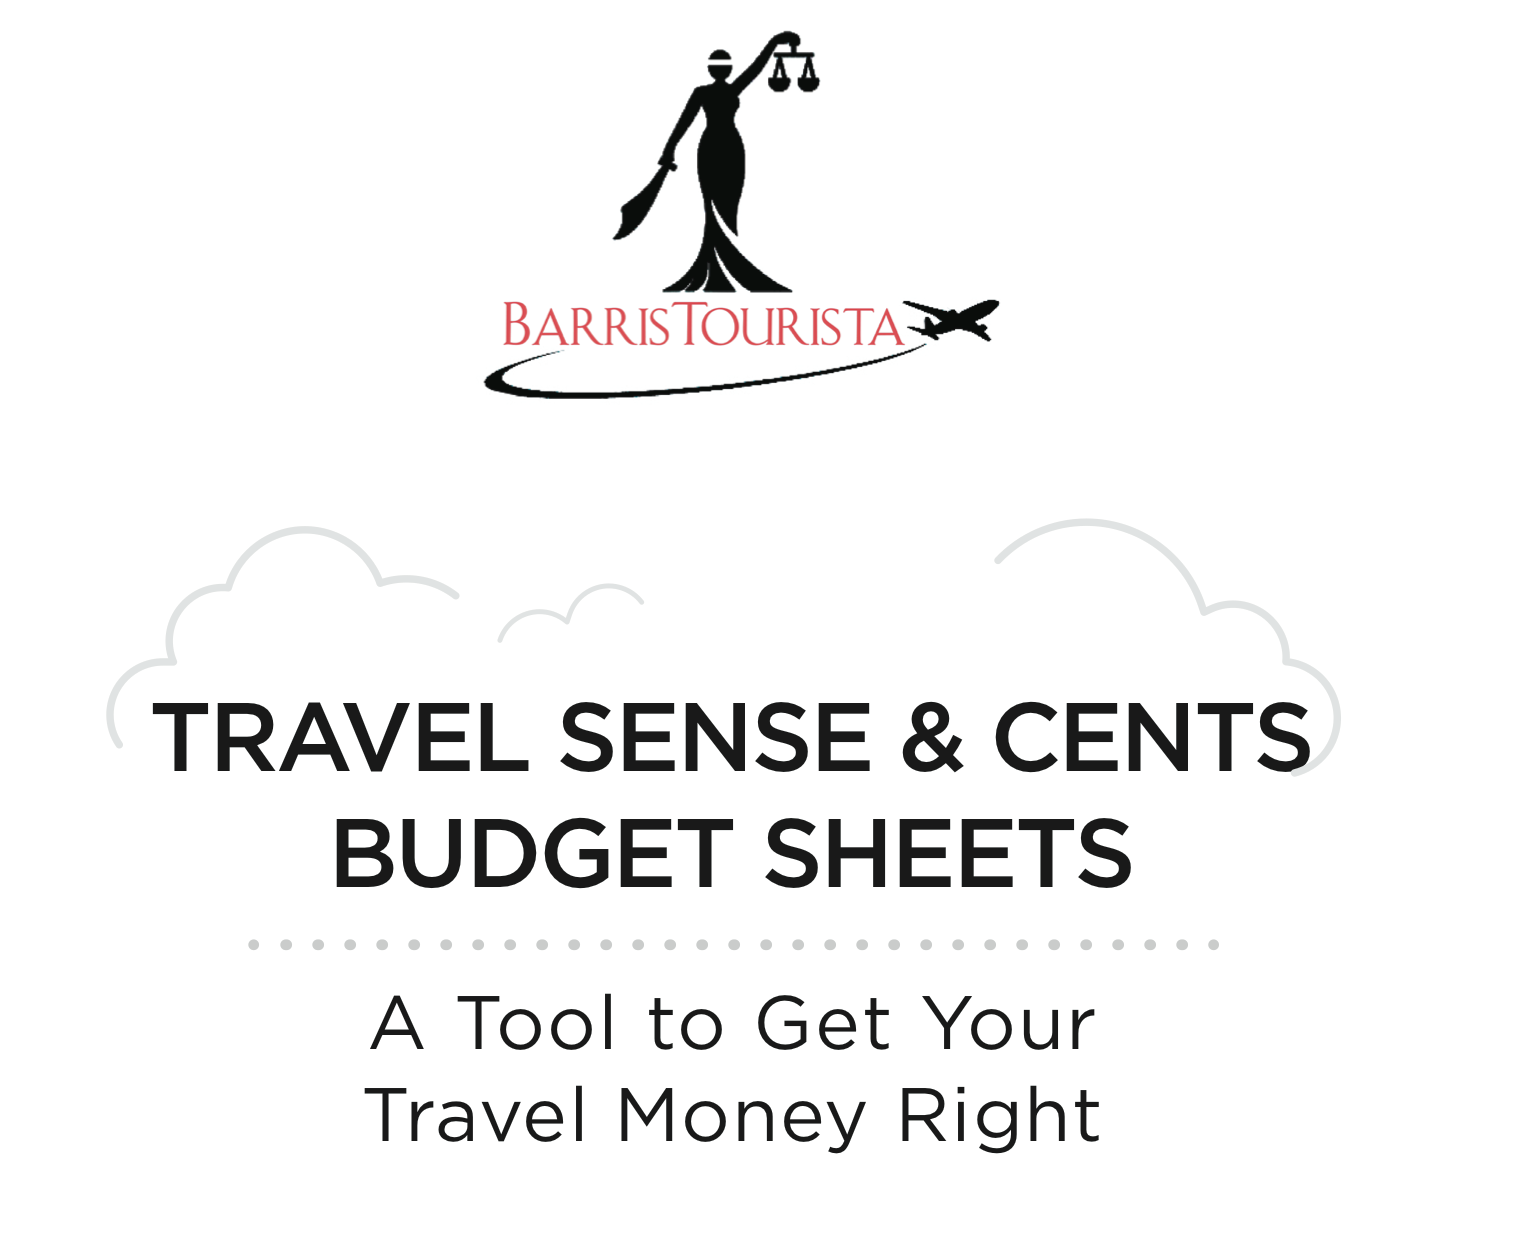 Travel Sense & Cents Budget Sheets BarrisTourista How to Budget for Travel